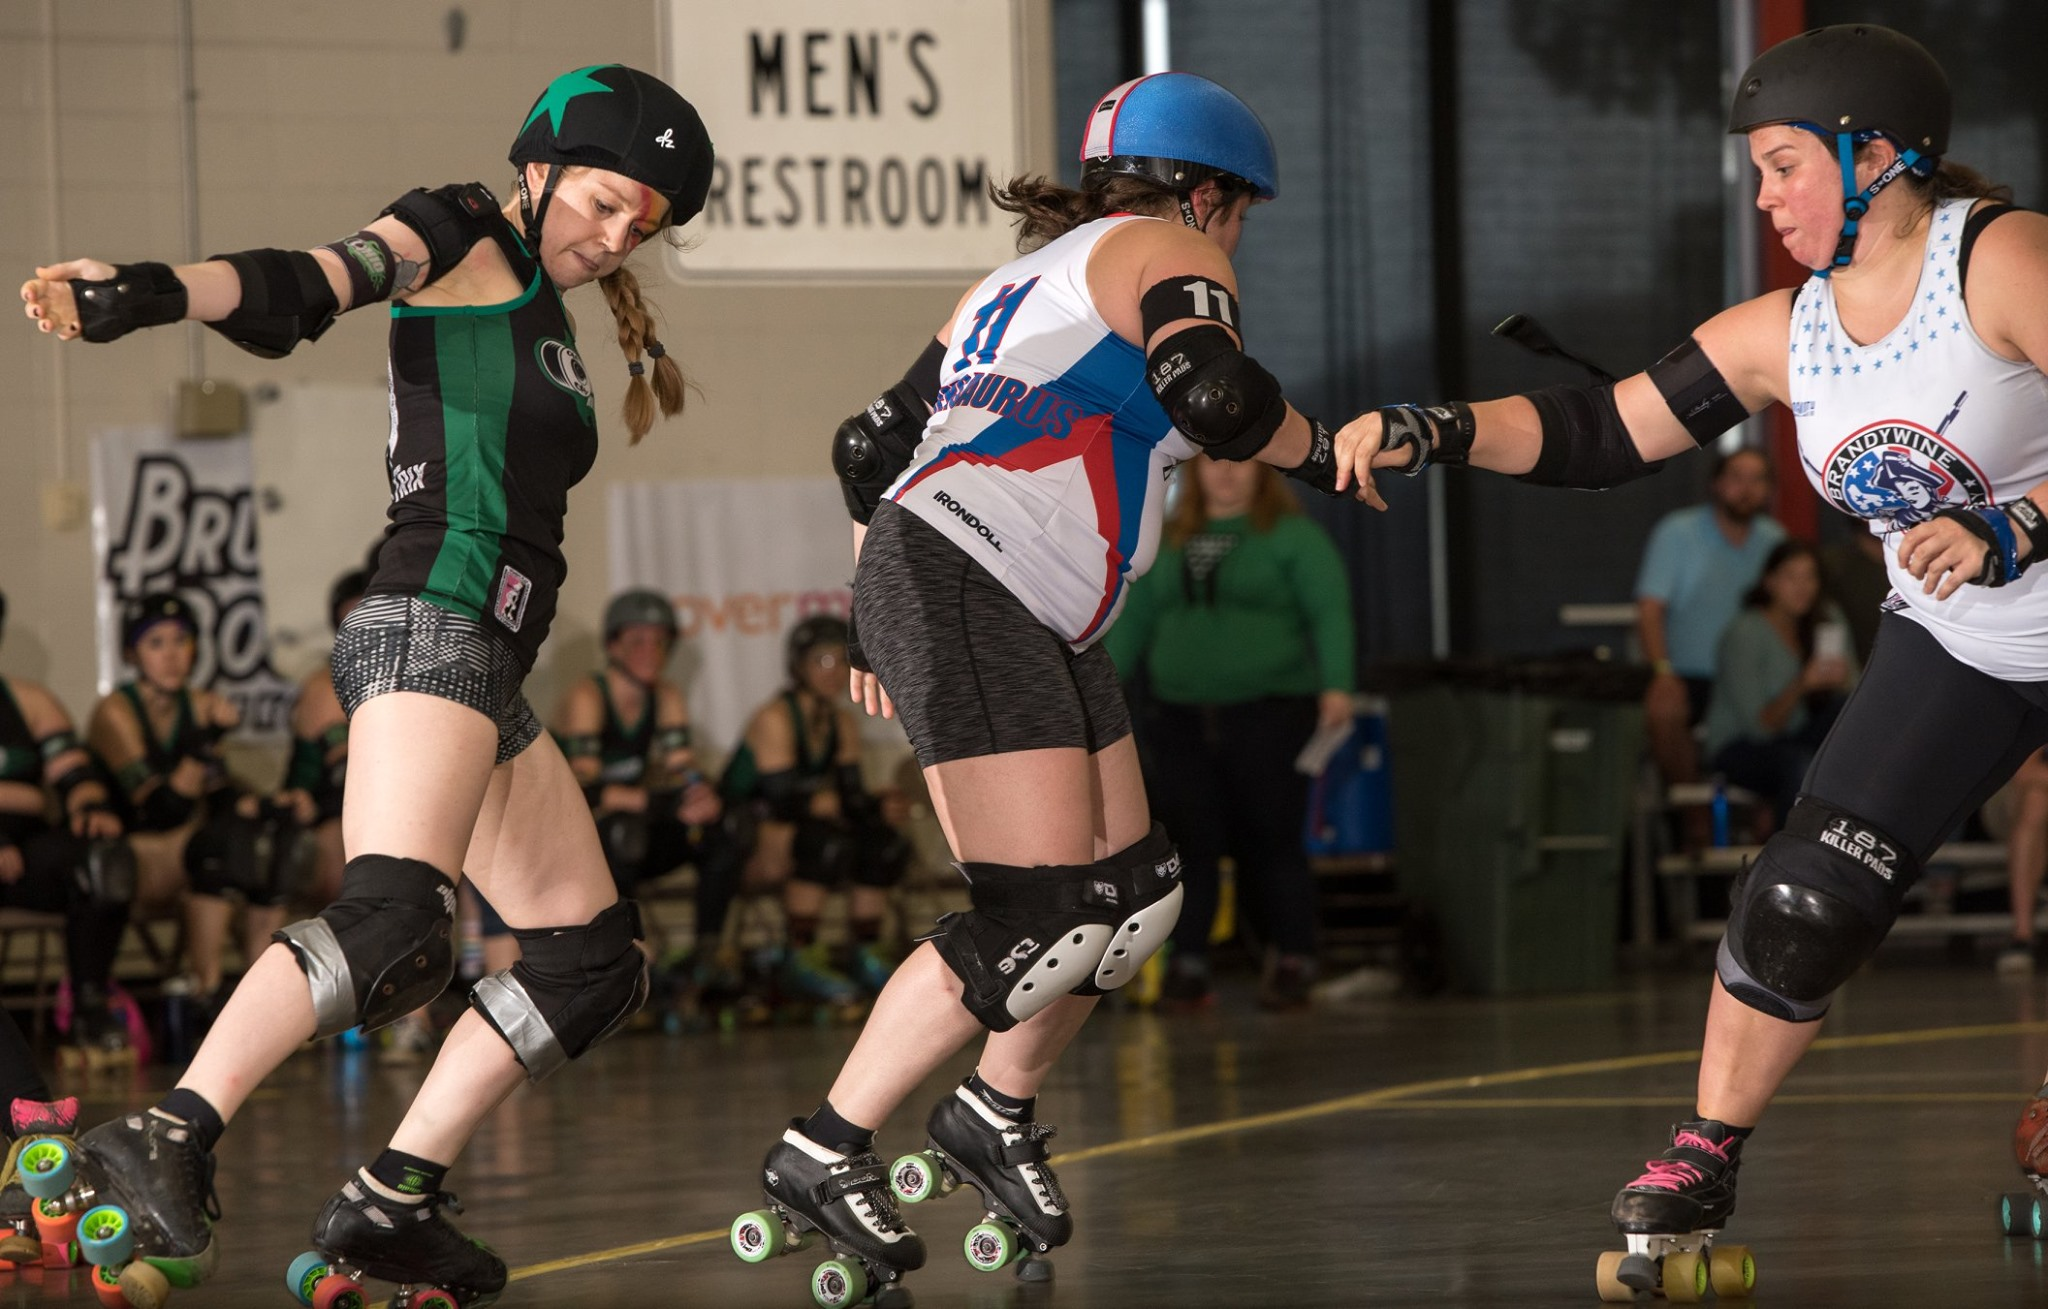 Trix fancy outside line GG v Brawlers 6.8.19 Chris Baker